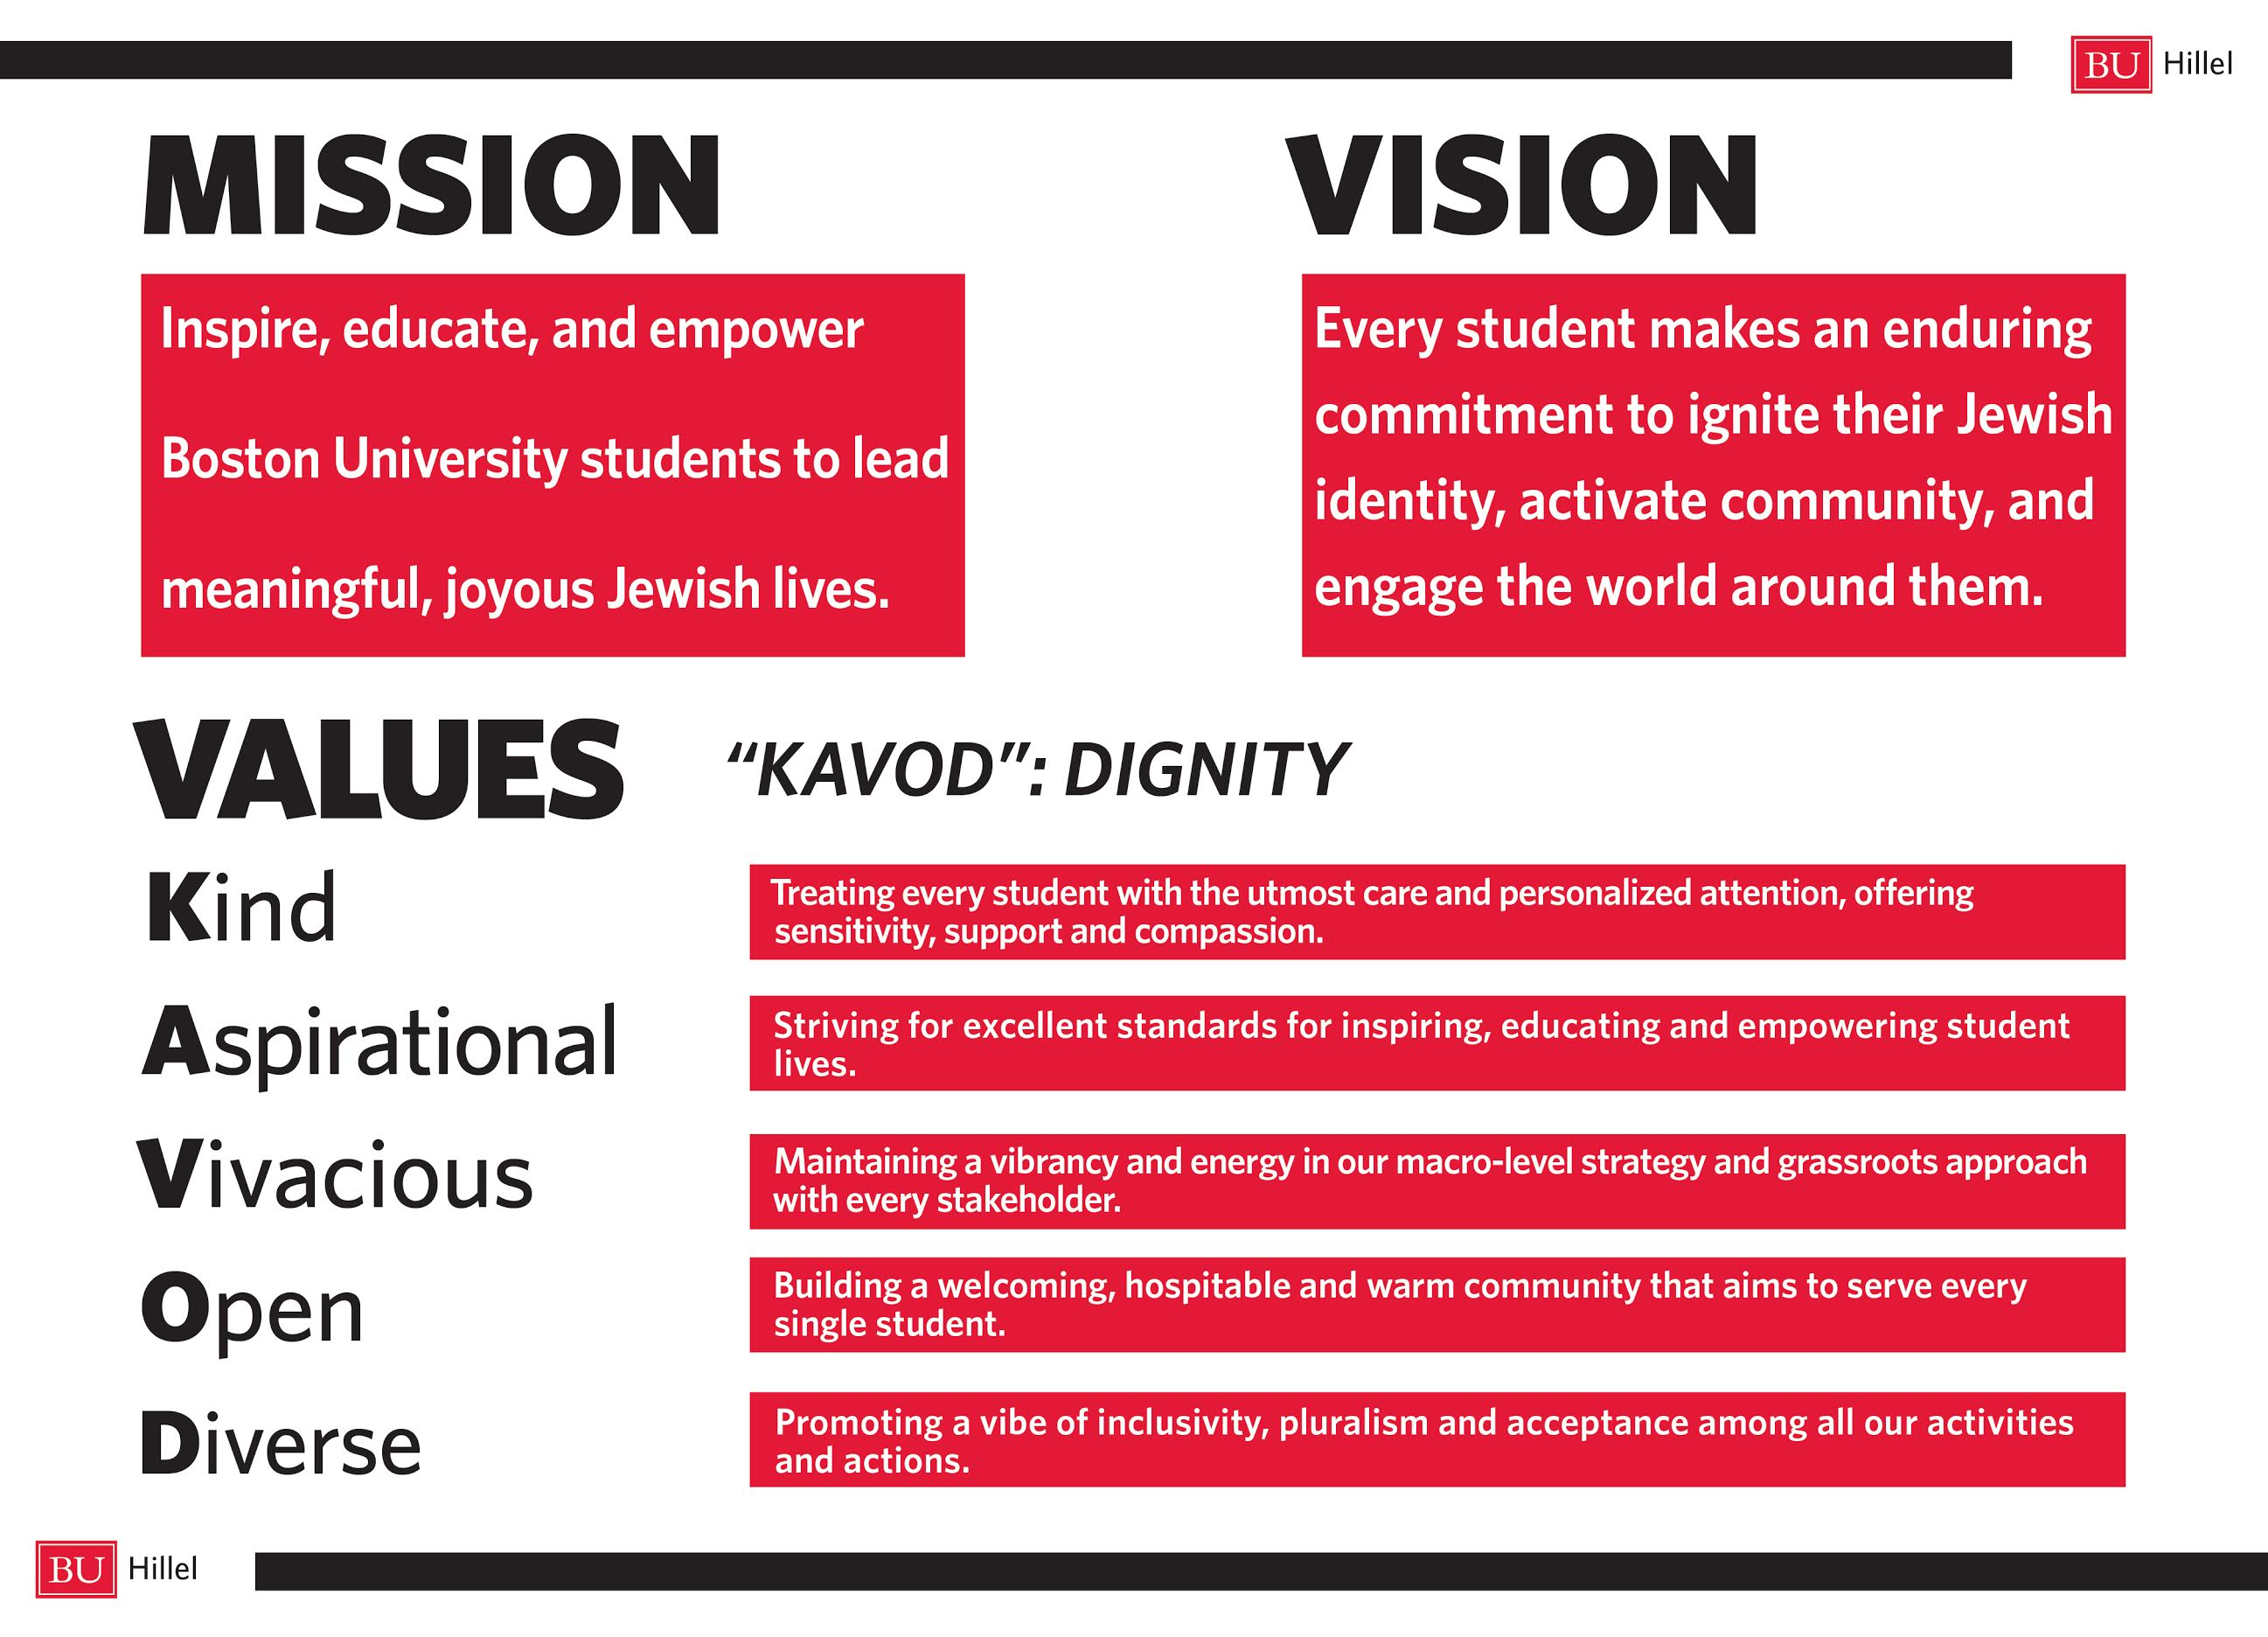 Staff boston university hillel our mission vision values 1betcityfo Image collections